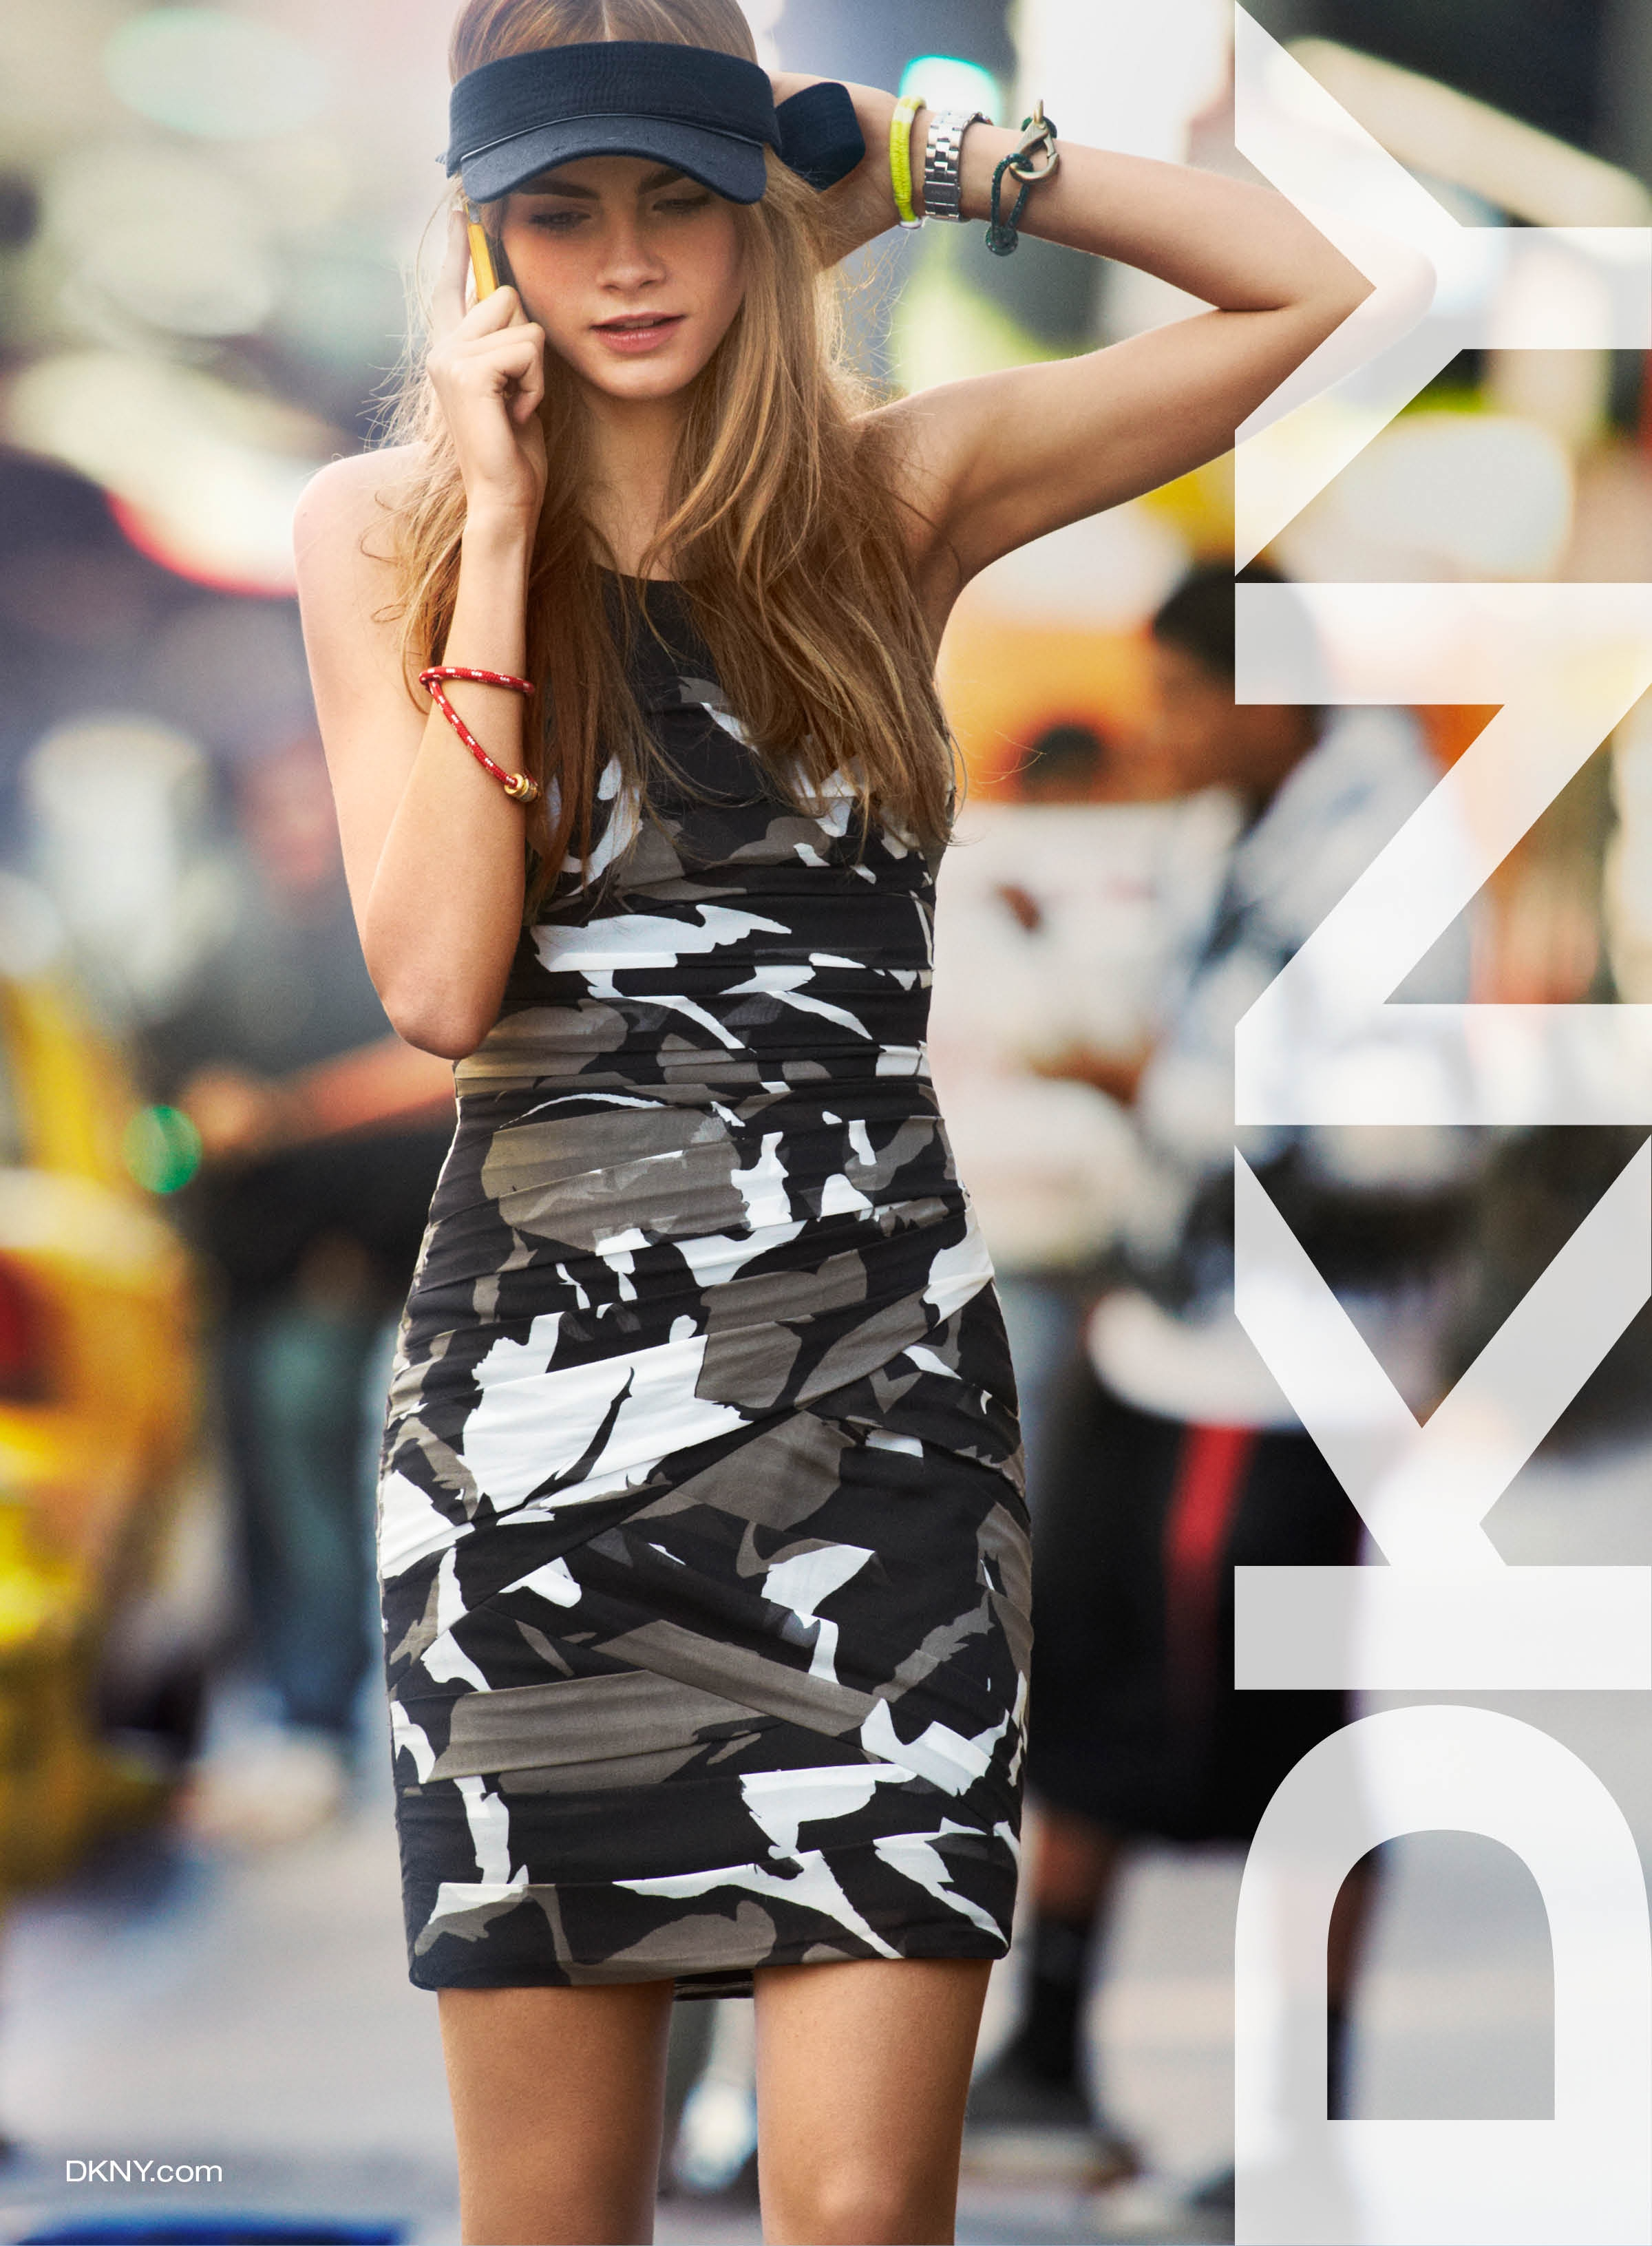 Cara-Delevingne-DKNY-Campaign-Pictures (2)